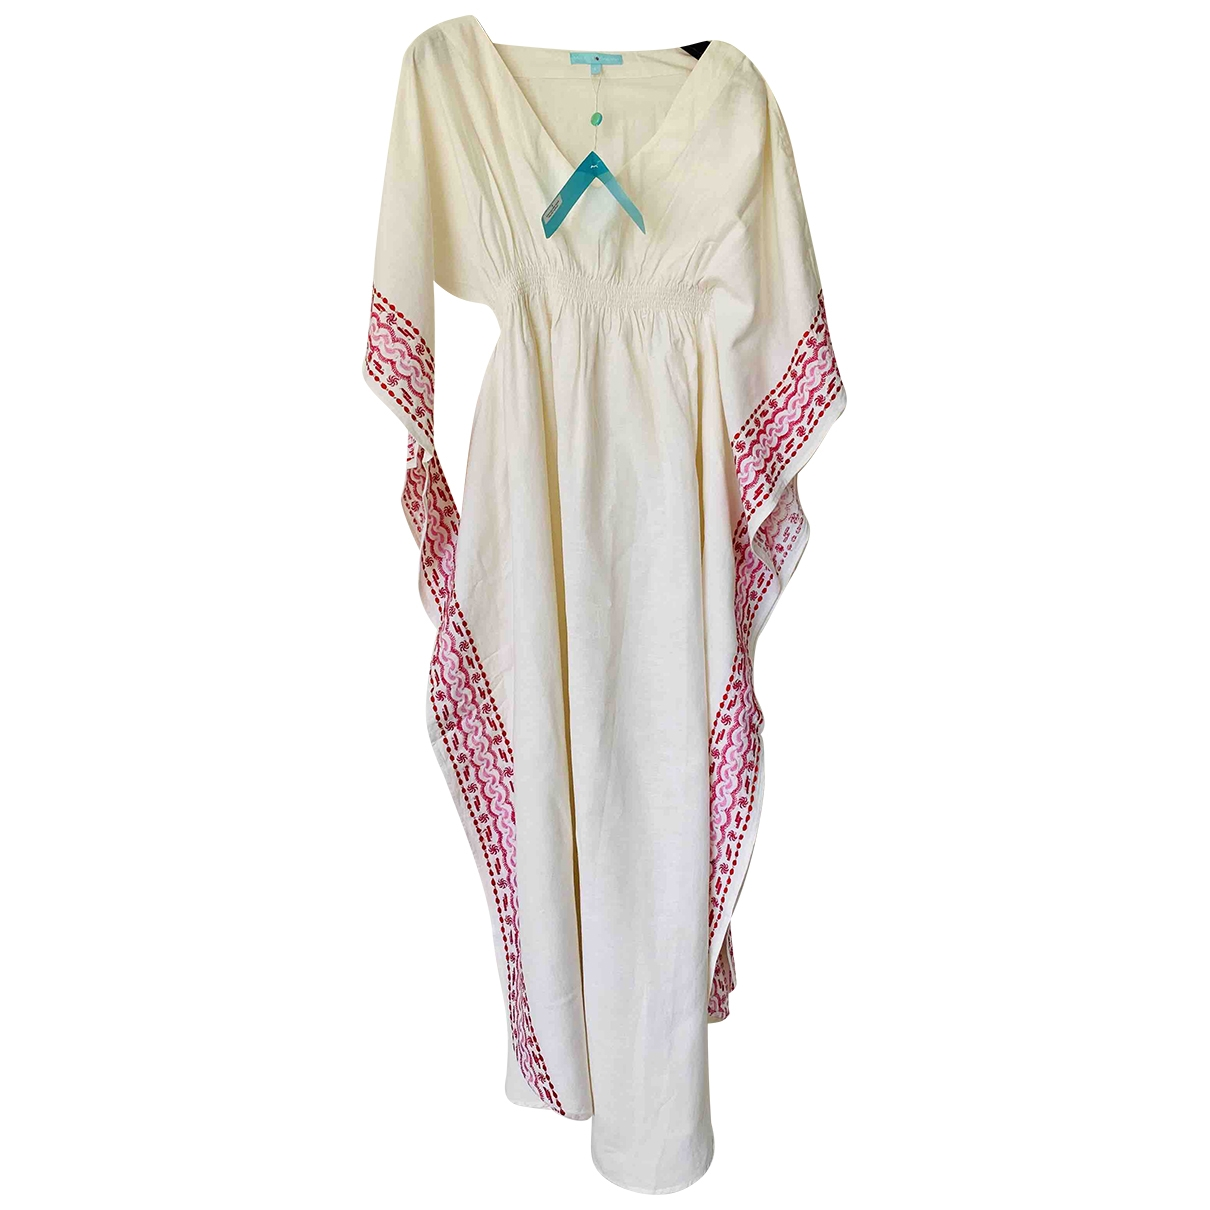 Melissa Odabash \N White Linen dress for Women L International